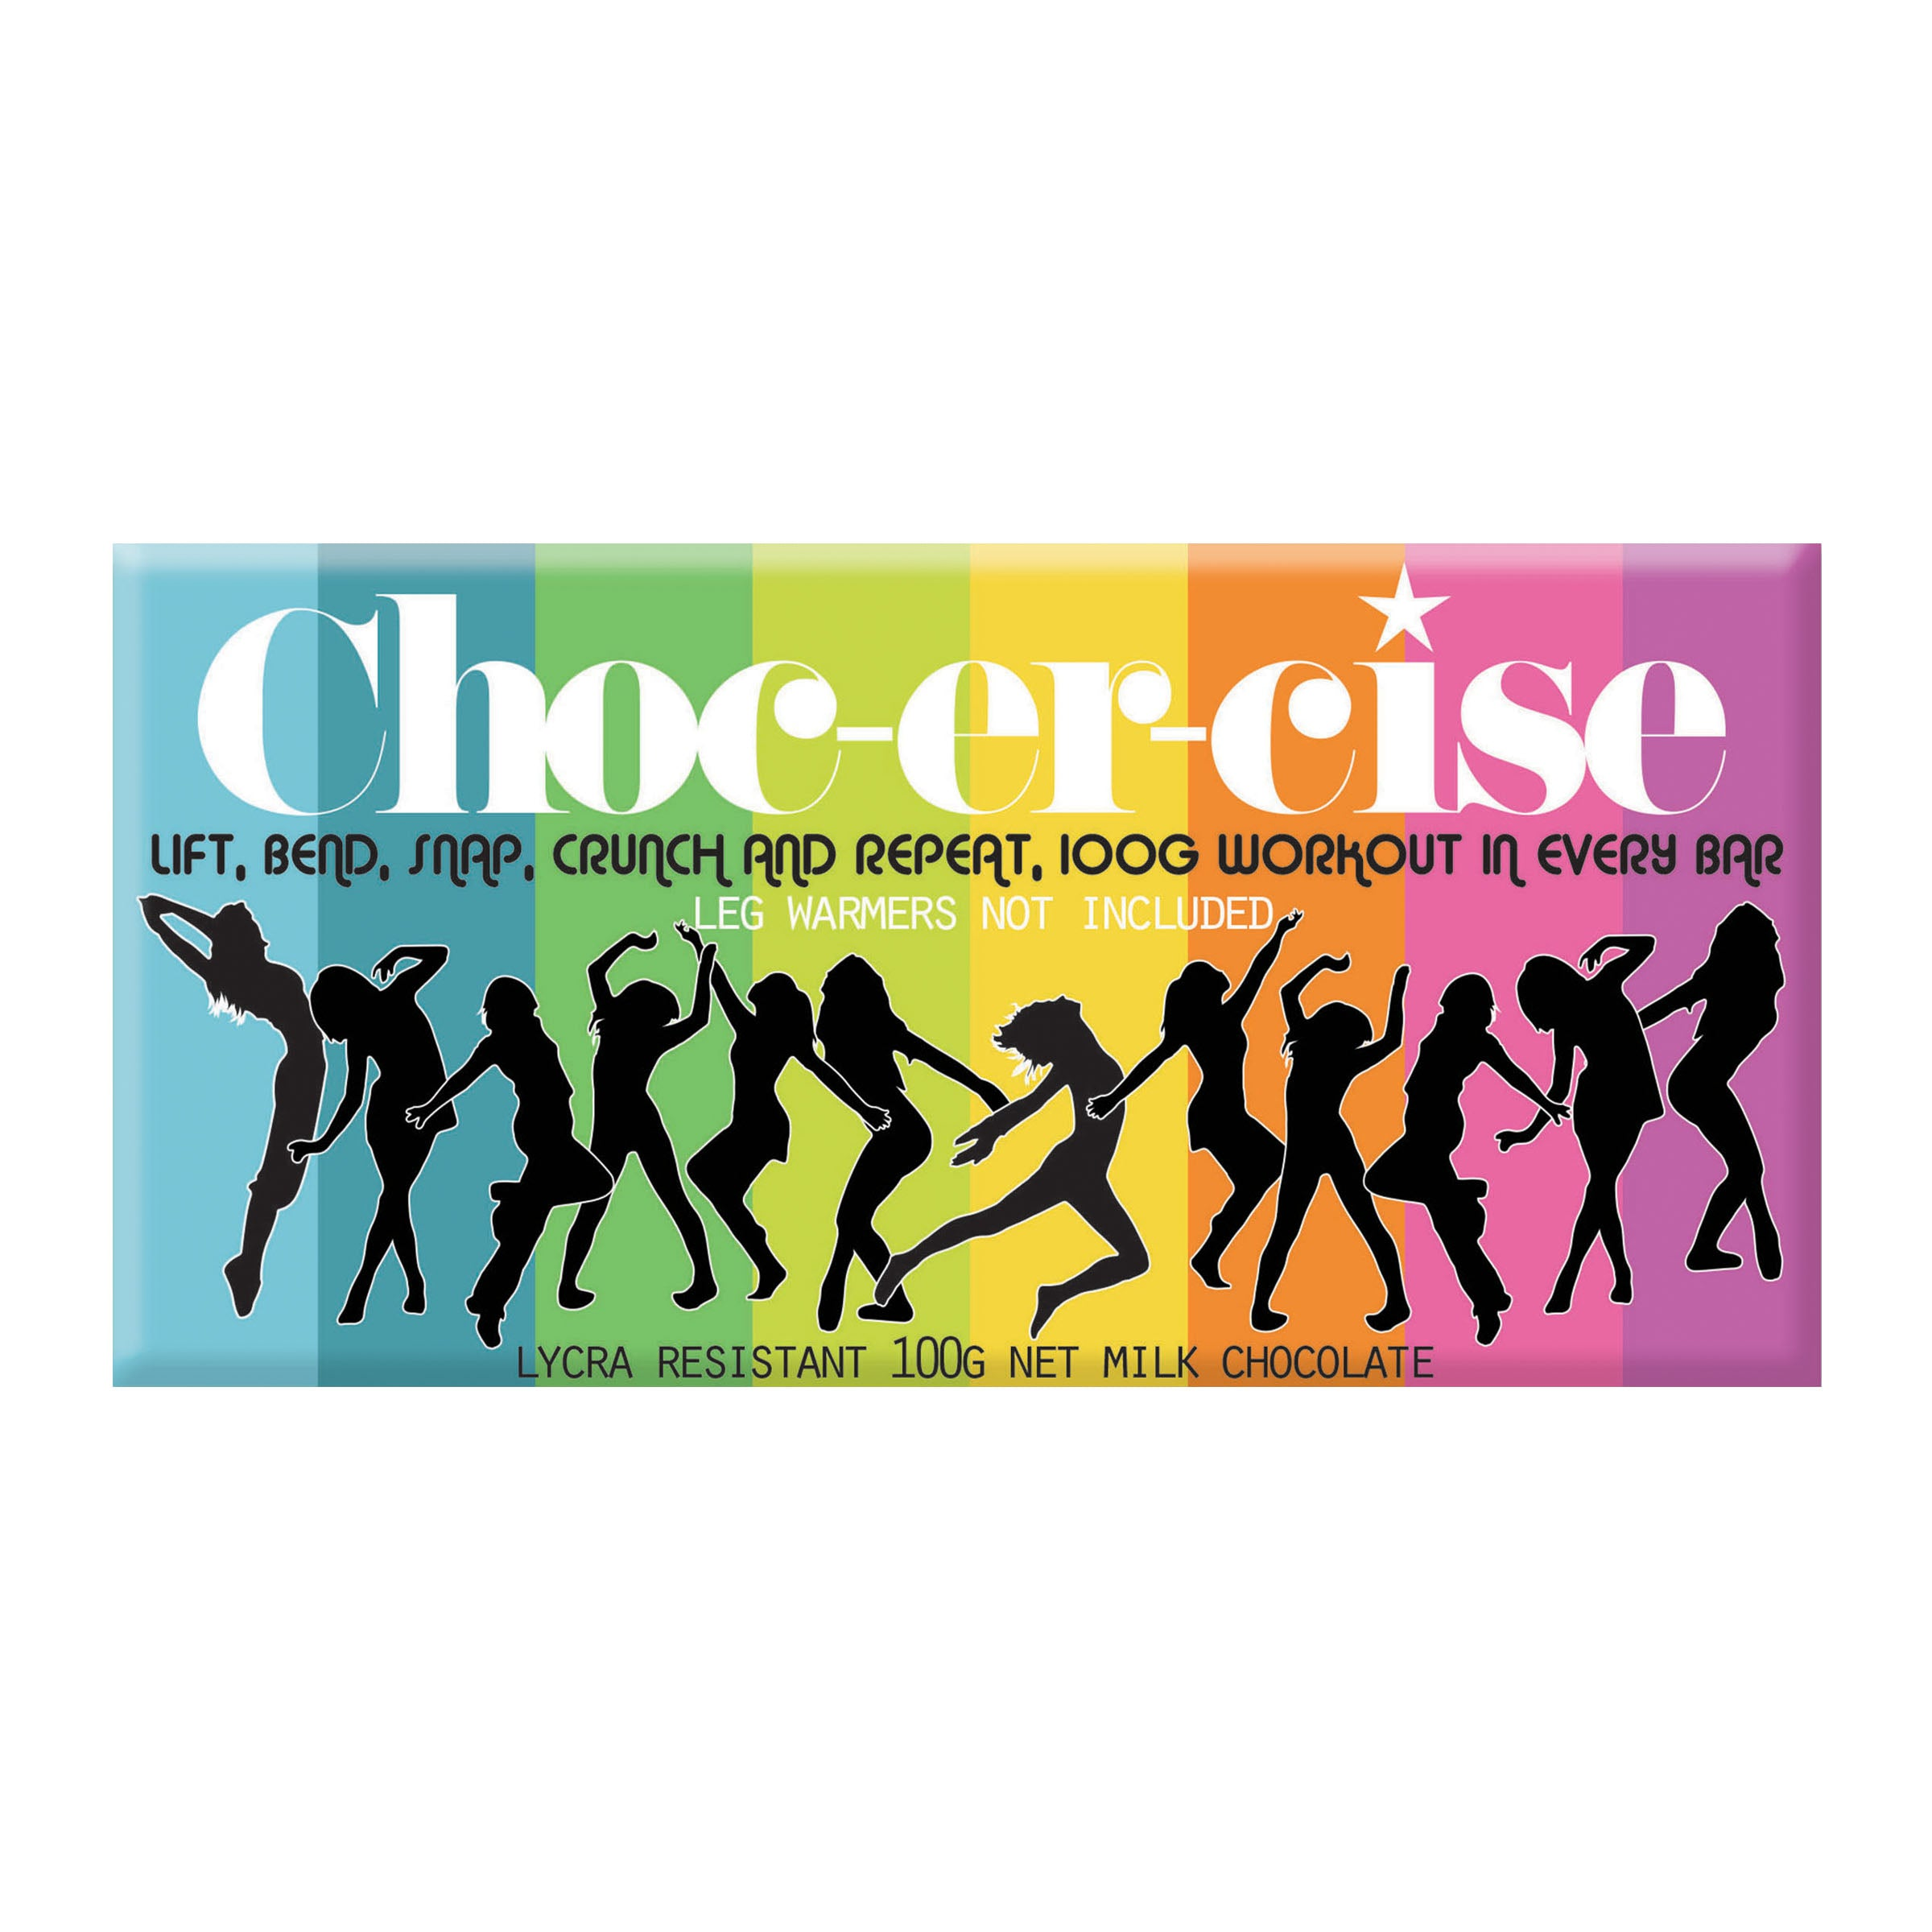 Choc-er-cise Milk Chocolate Block